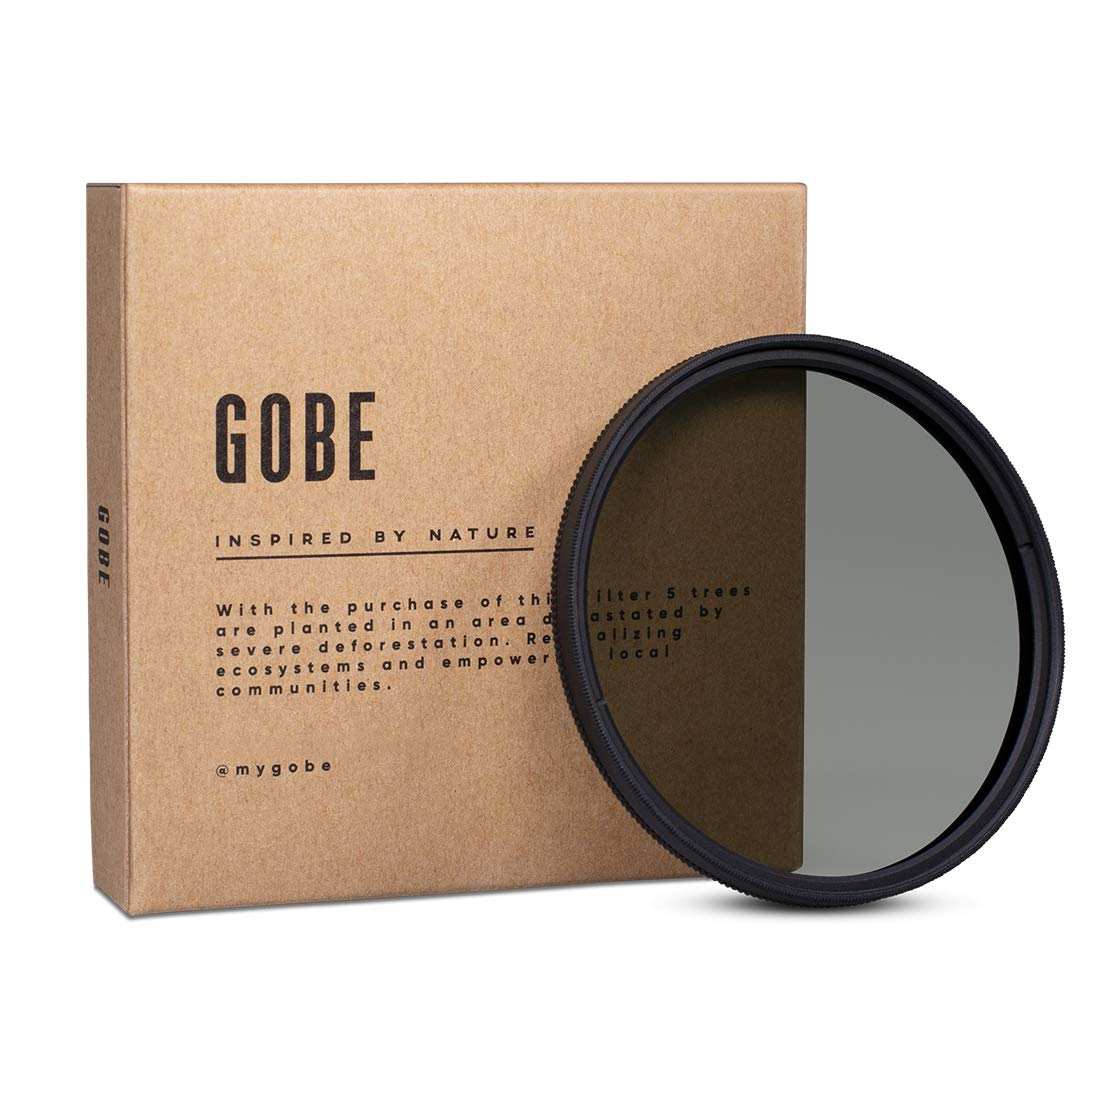 Gobe CPL 77mm Japan Optics 16-Layer Multi-Coated Polarized Filter by Gobe